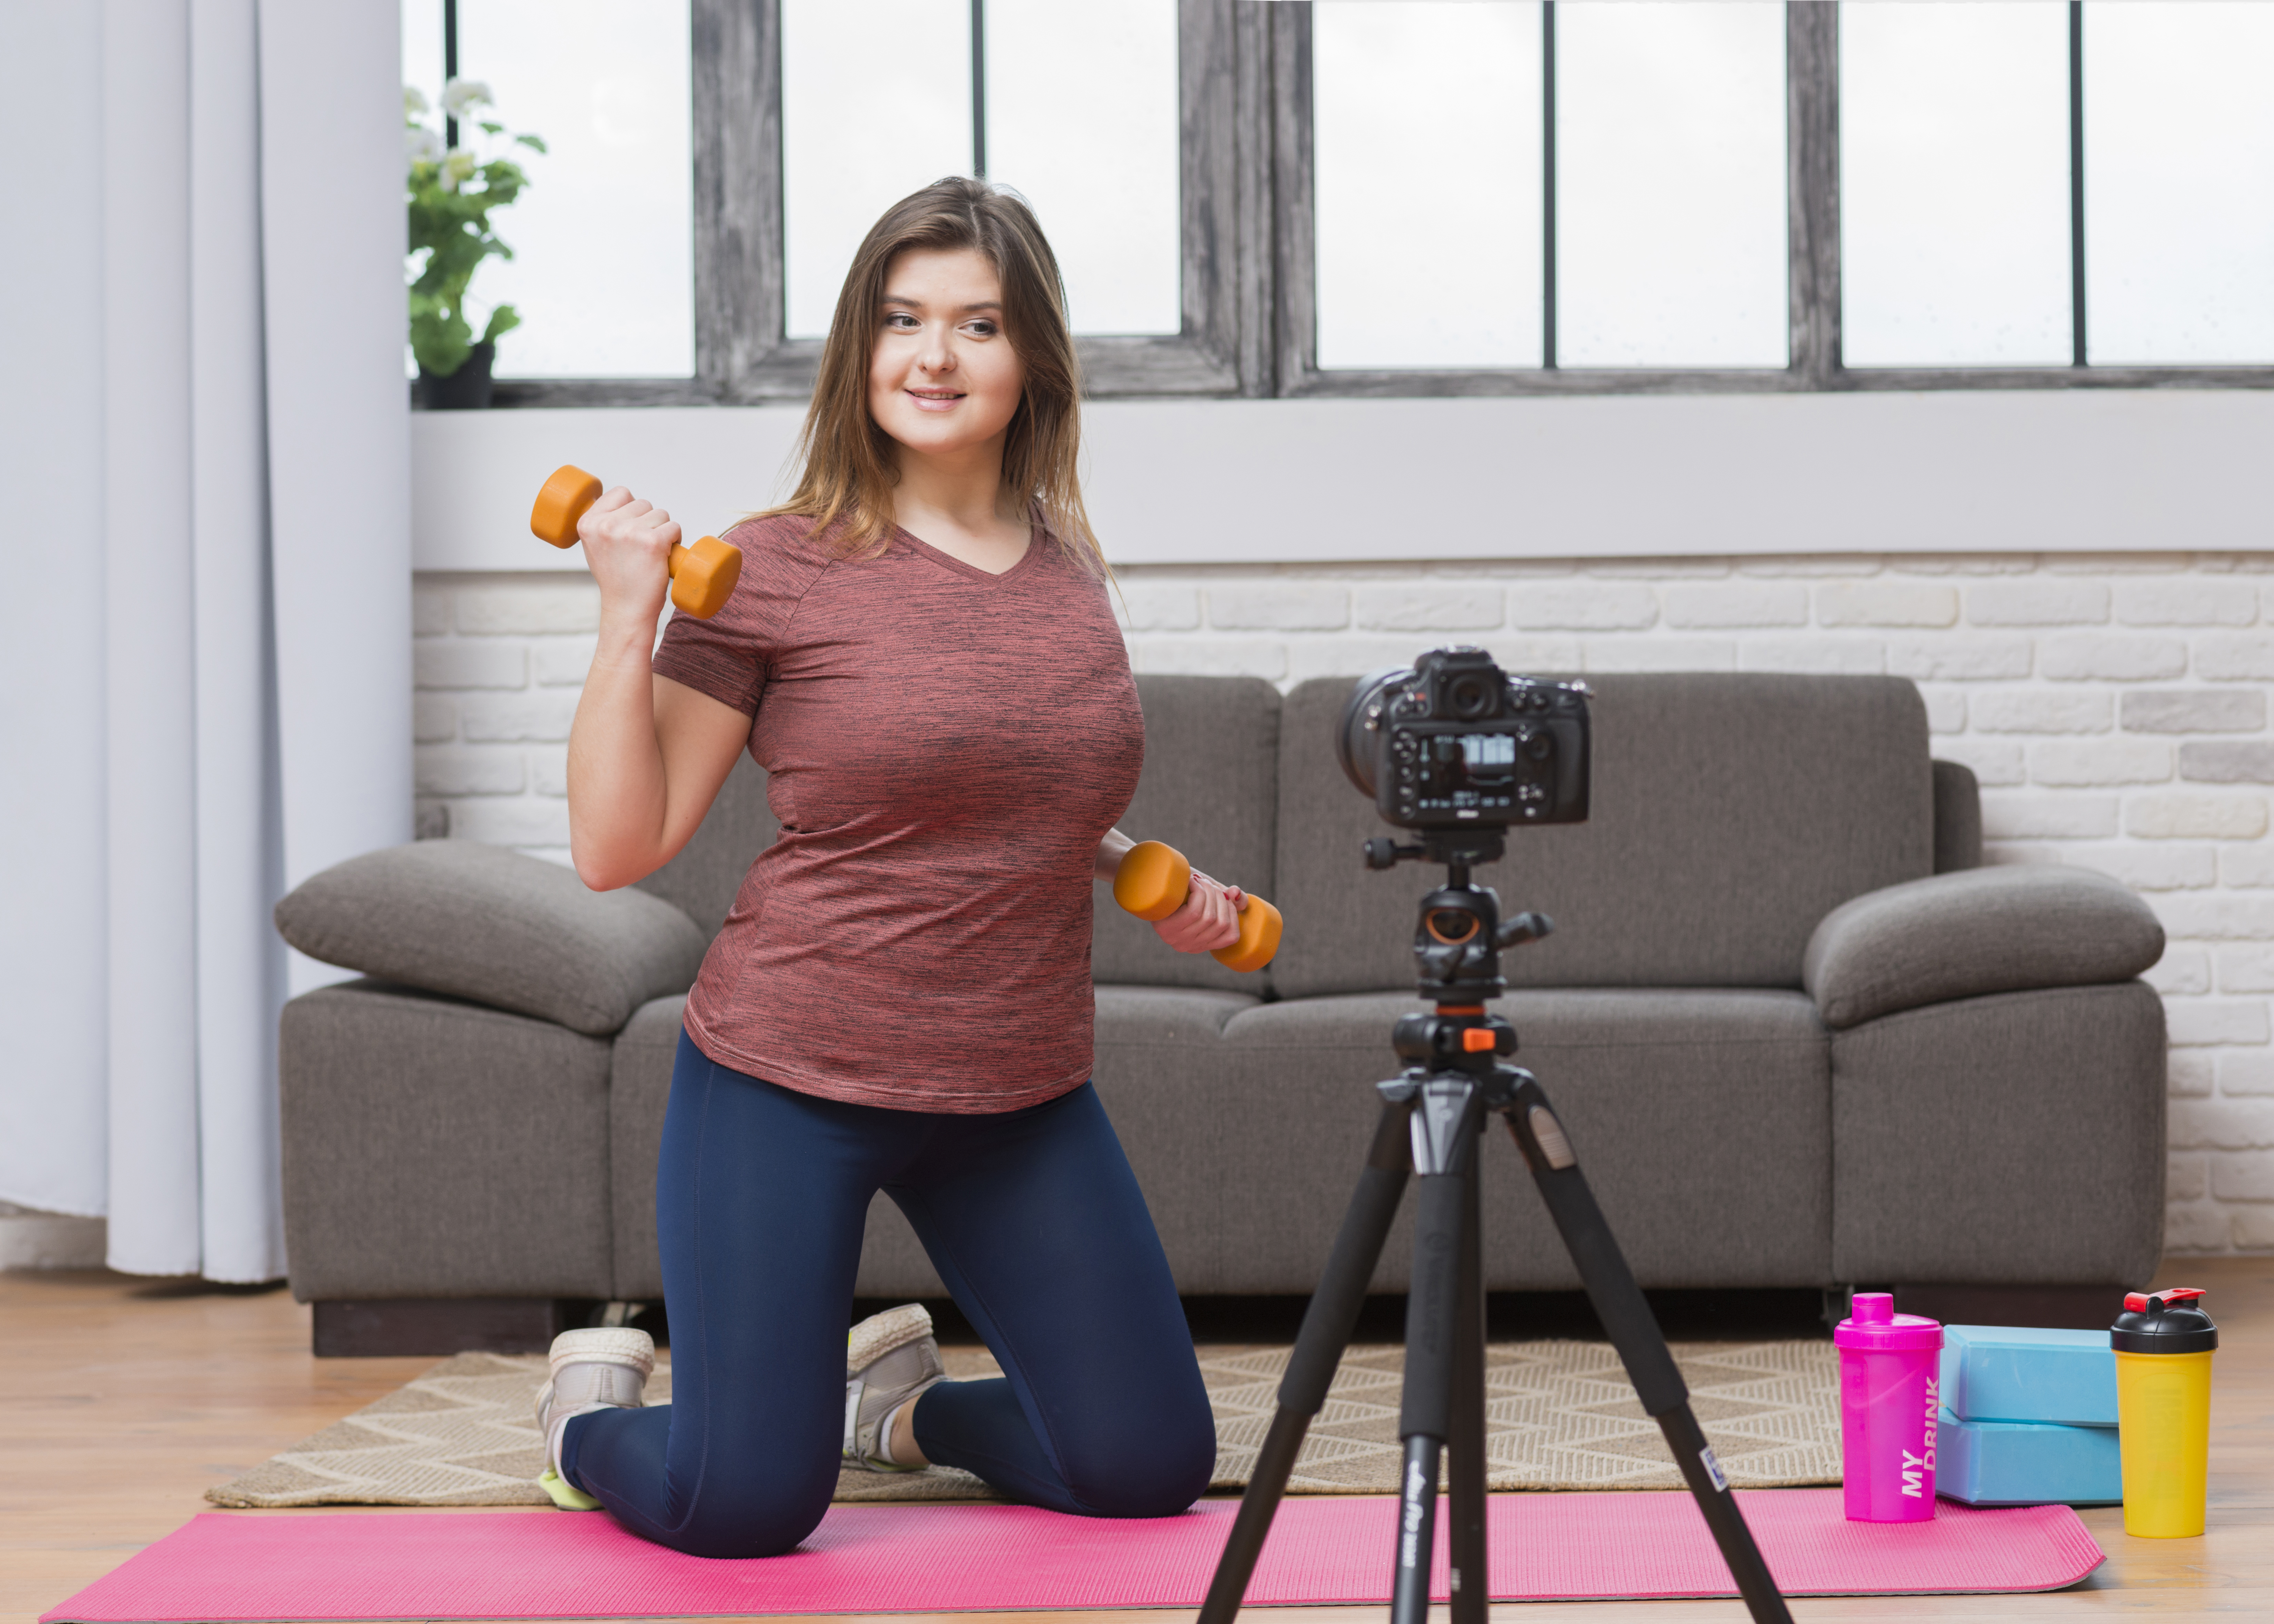 woman working out in front of camera